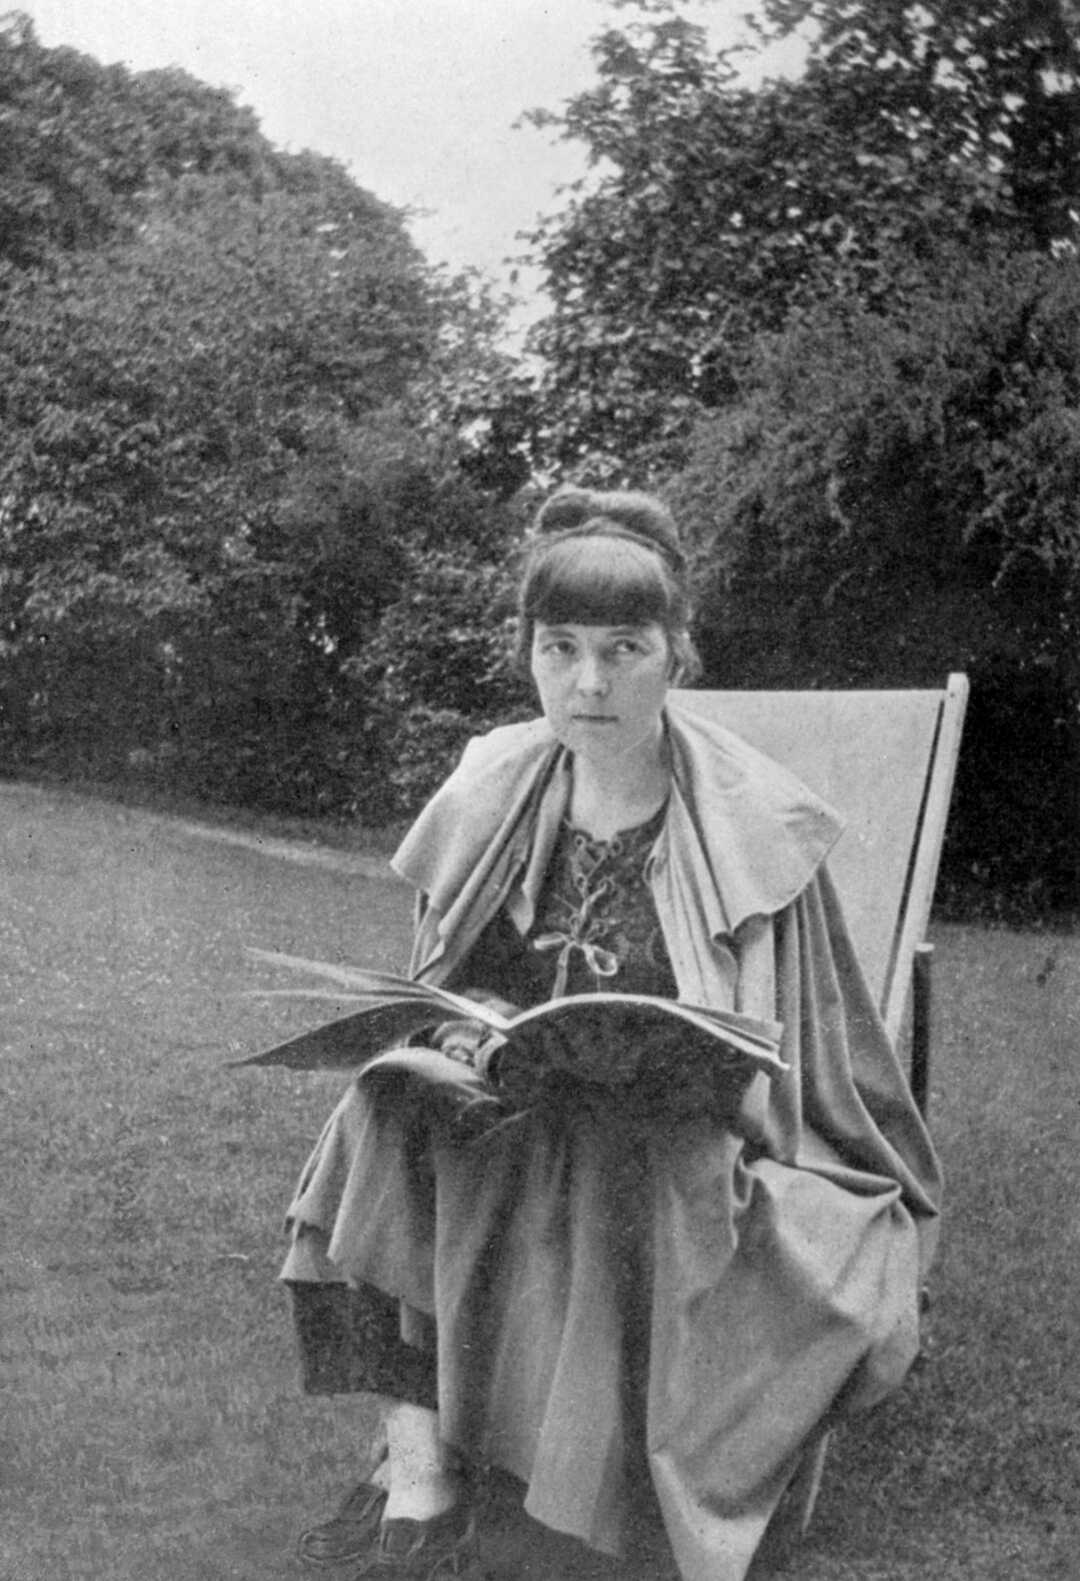 Katherine Mansfield sitting in a chair outdoors with a magazine or book in her lap